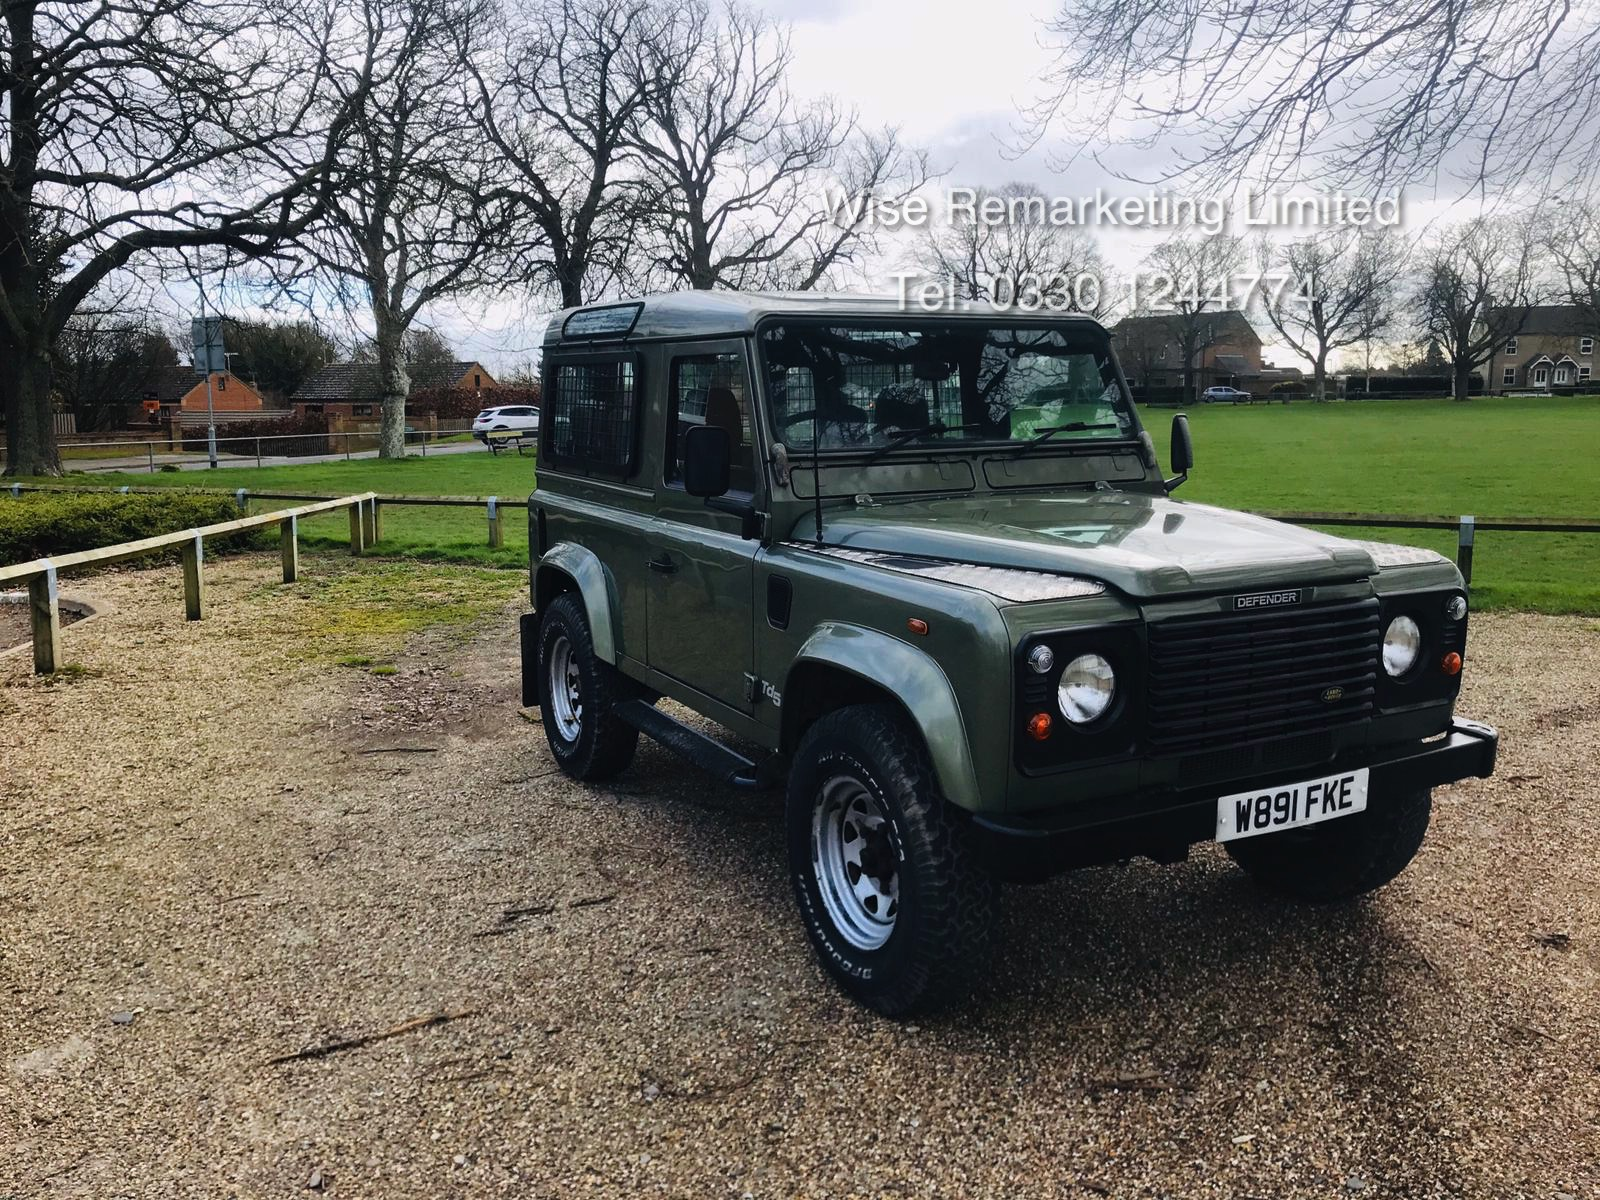 Land Rover Defender 90 County 2.5 TD5 - 2000 Year W Reg - 7 Seater - RARE - SAVE 20% NO VAT - Image 4 of 12